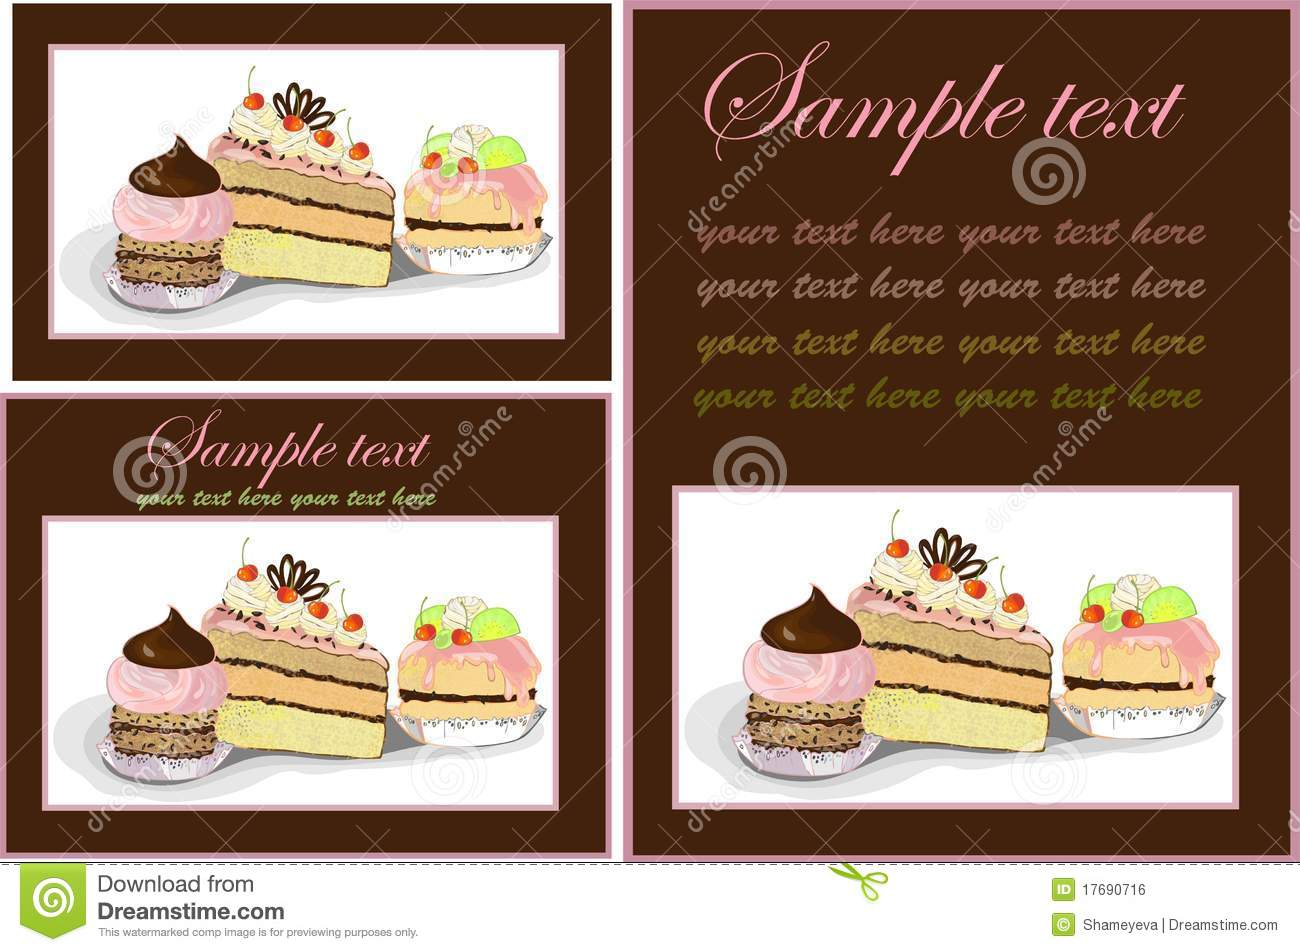 Types Of Cakes To Bake